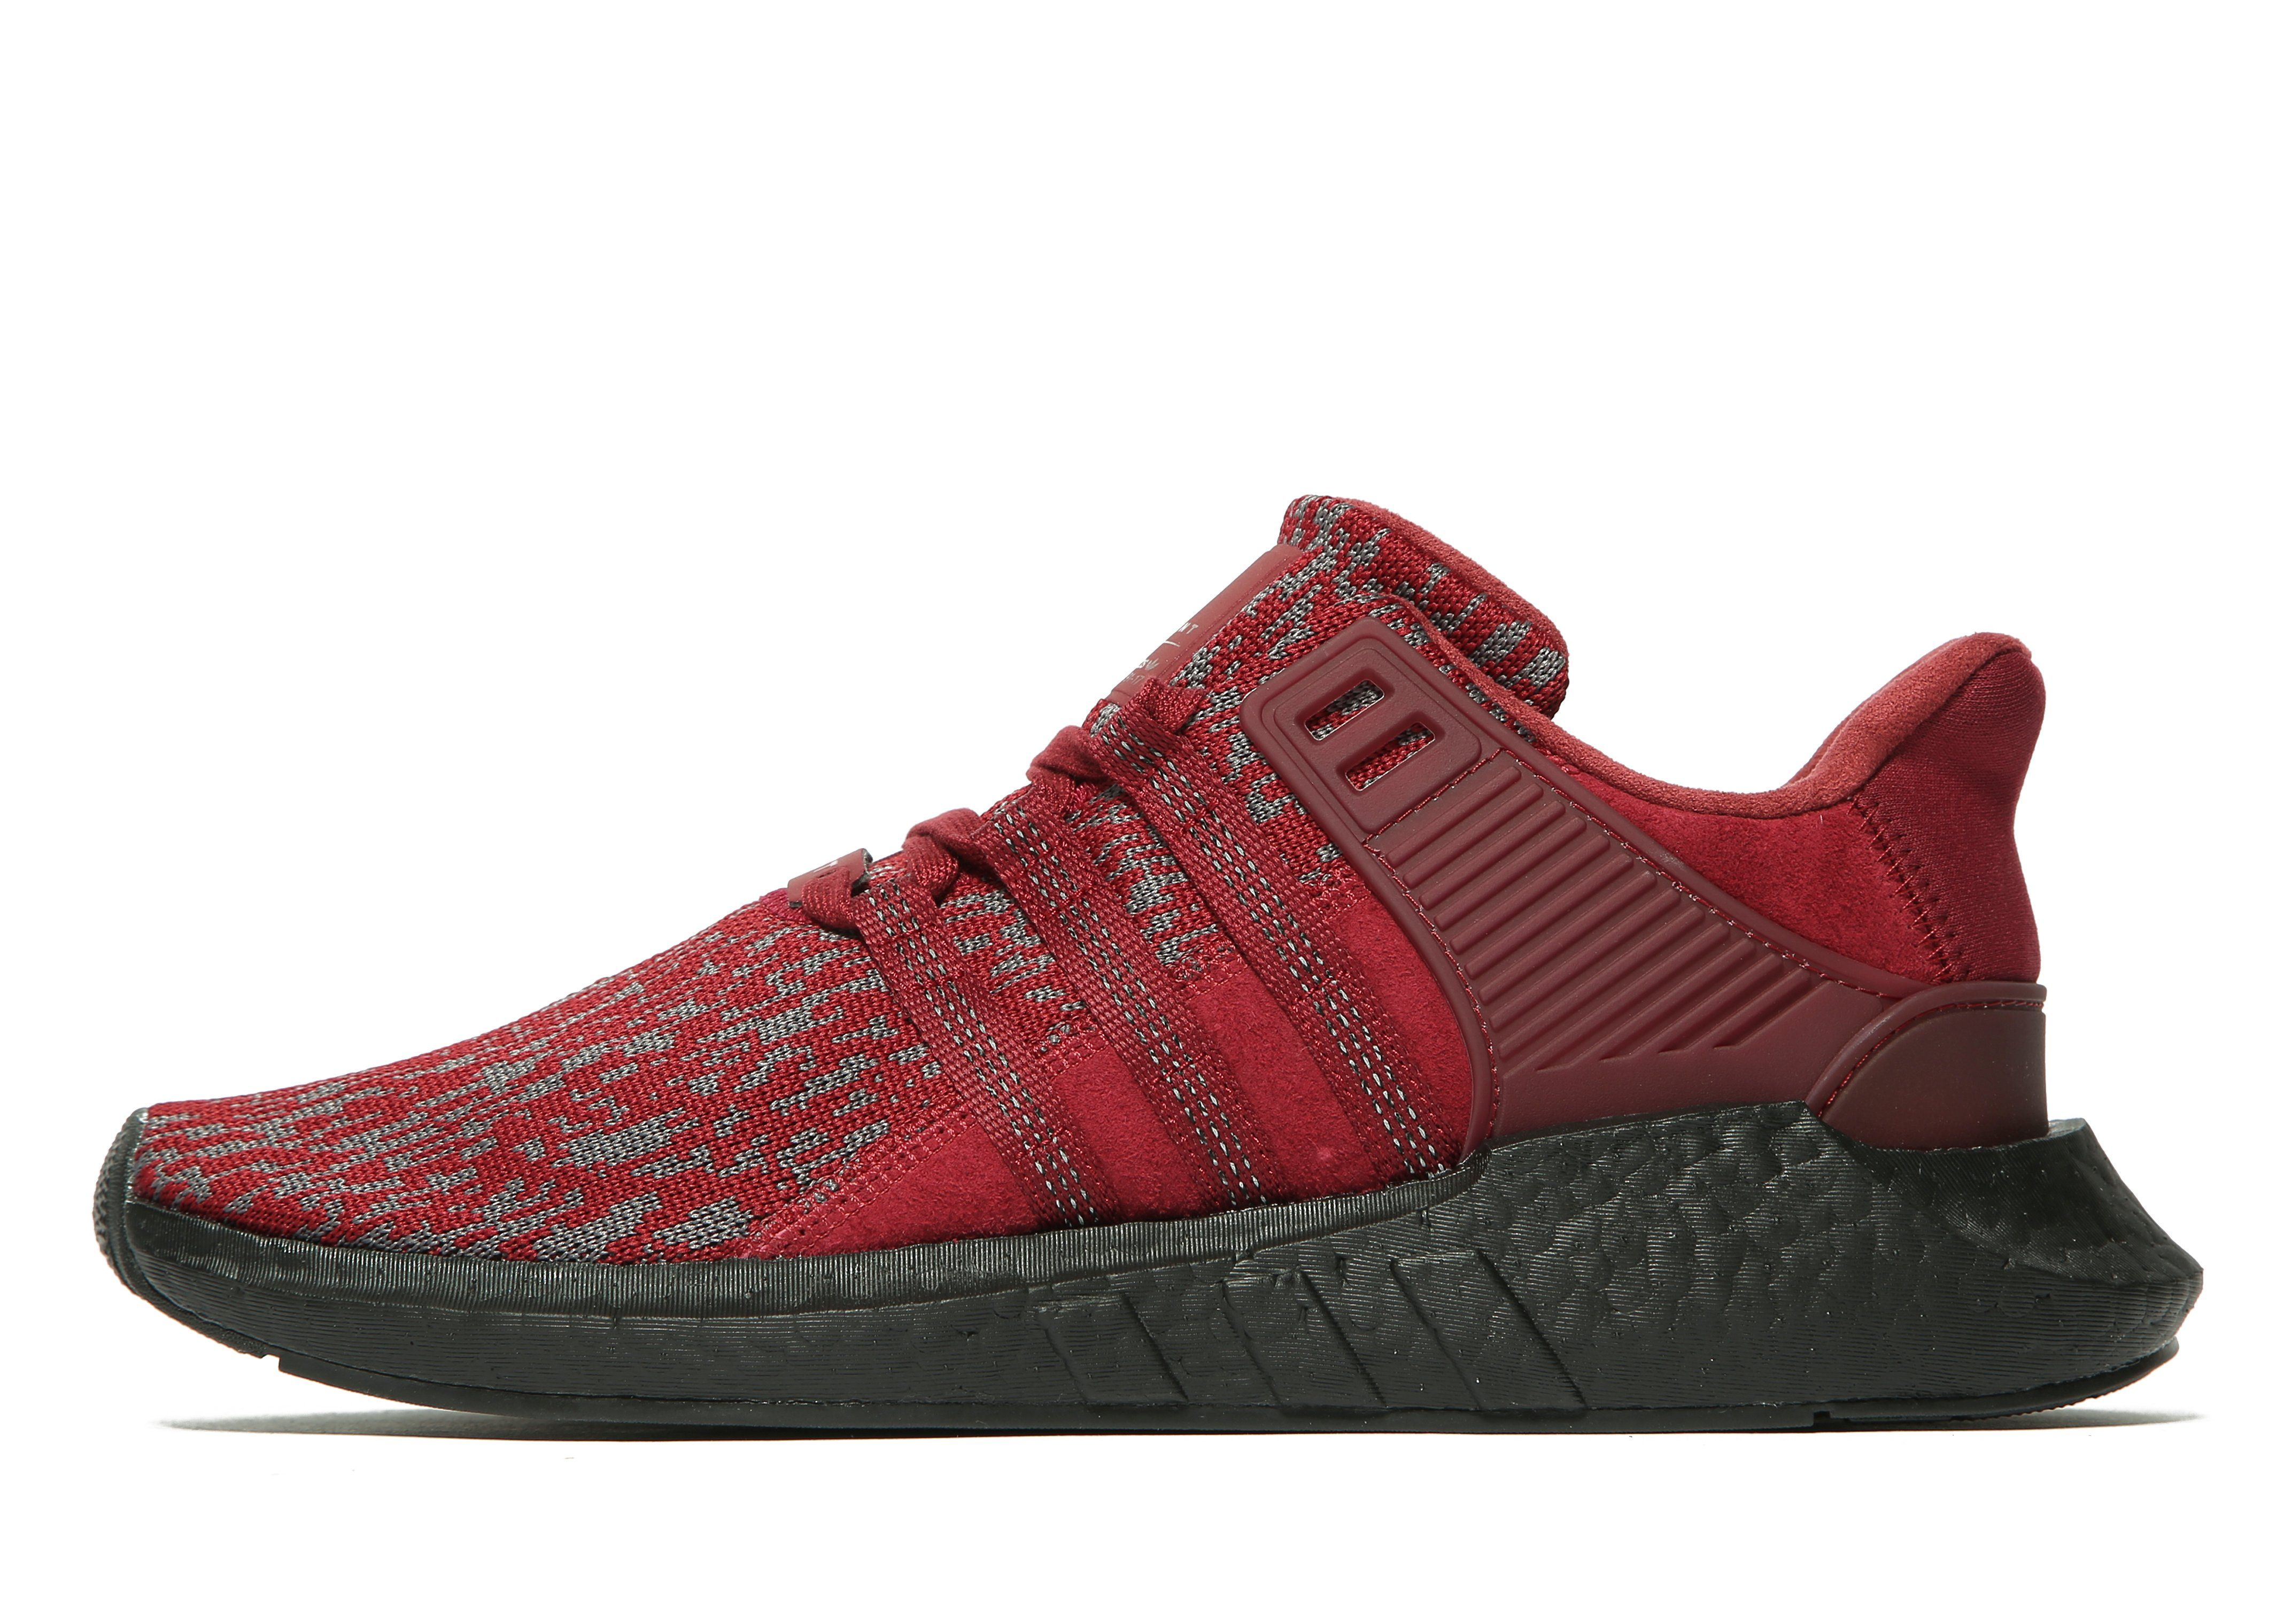 adidas shoes high tops red and black. adidas originals eqt support 93/17 shoes high tops red and black